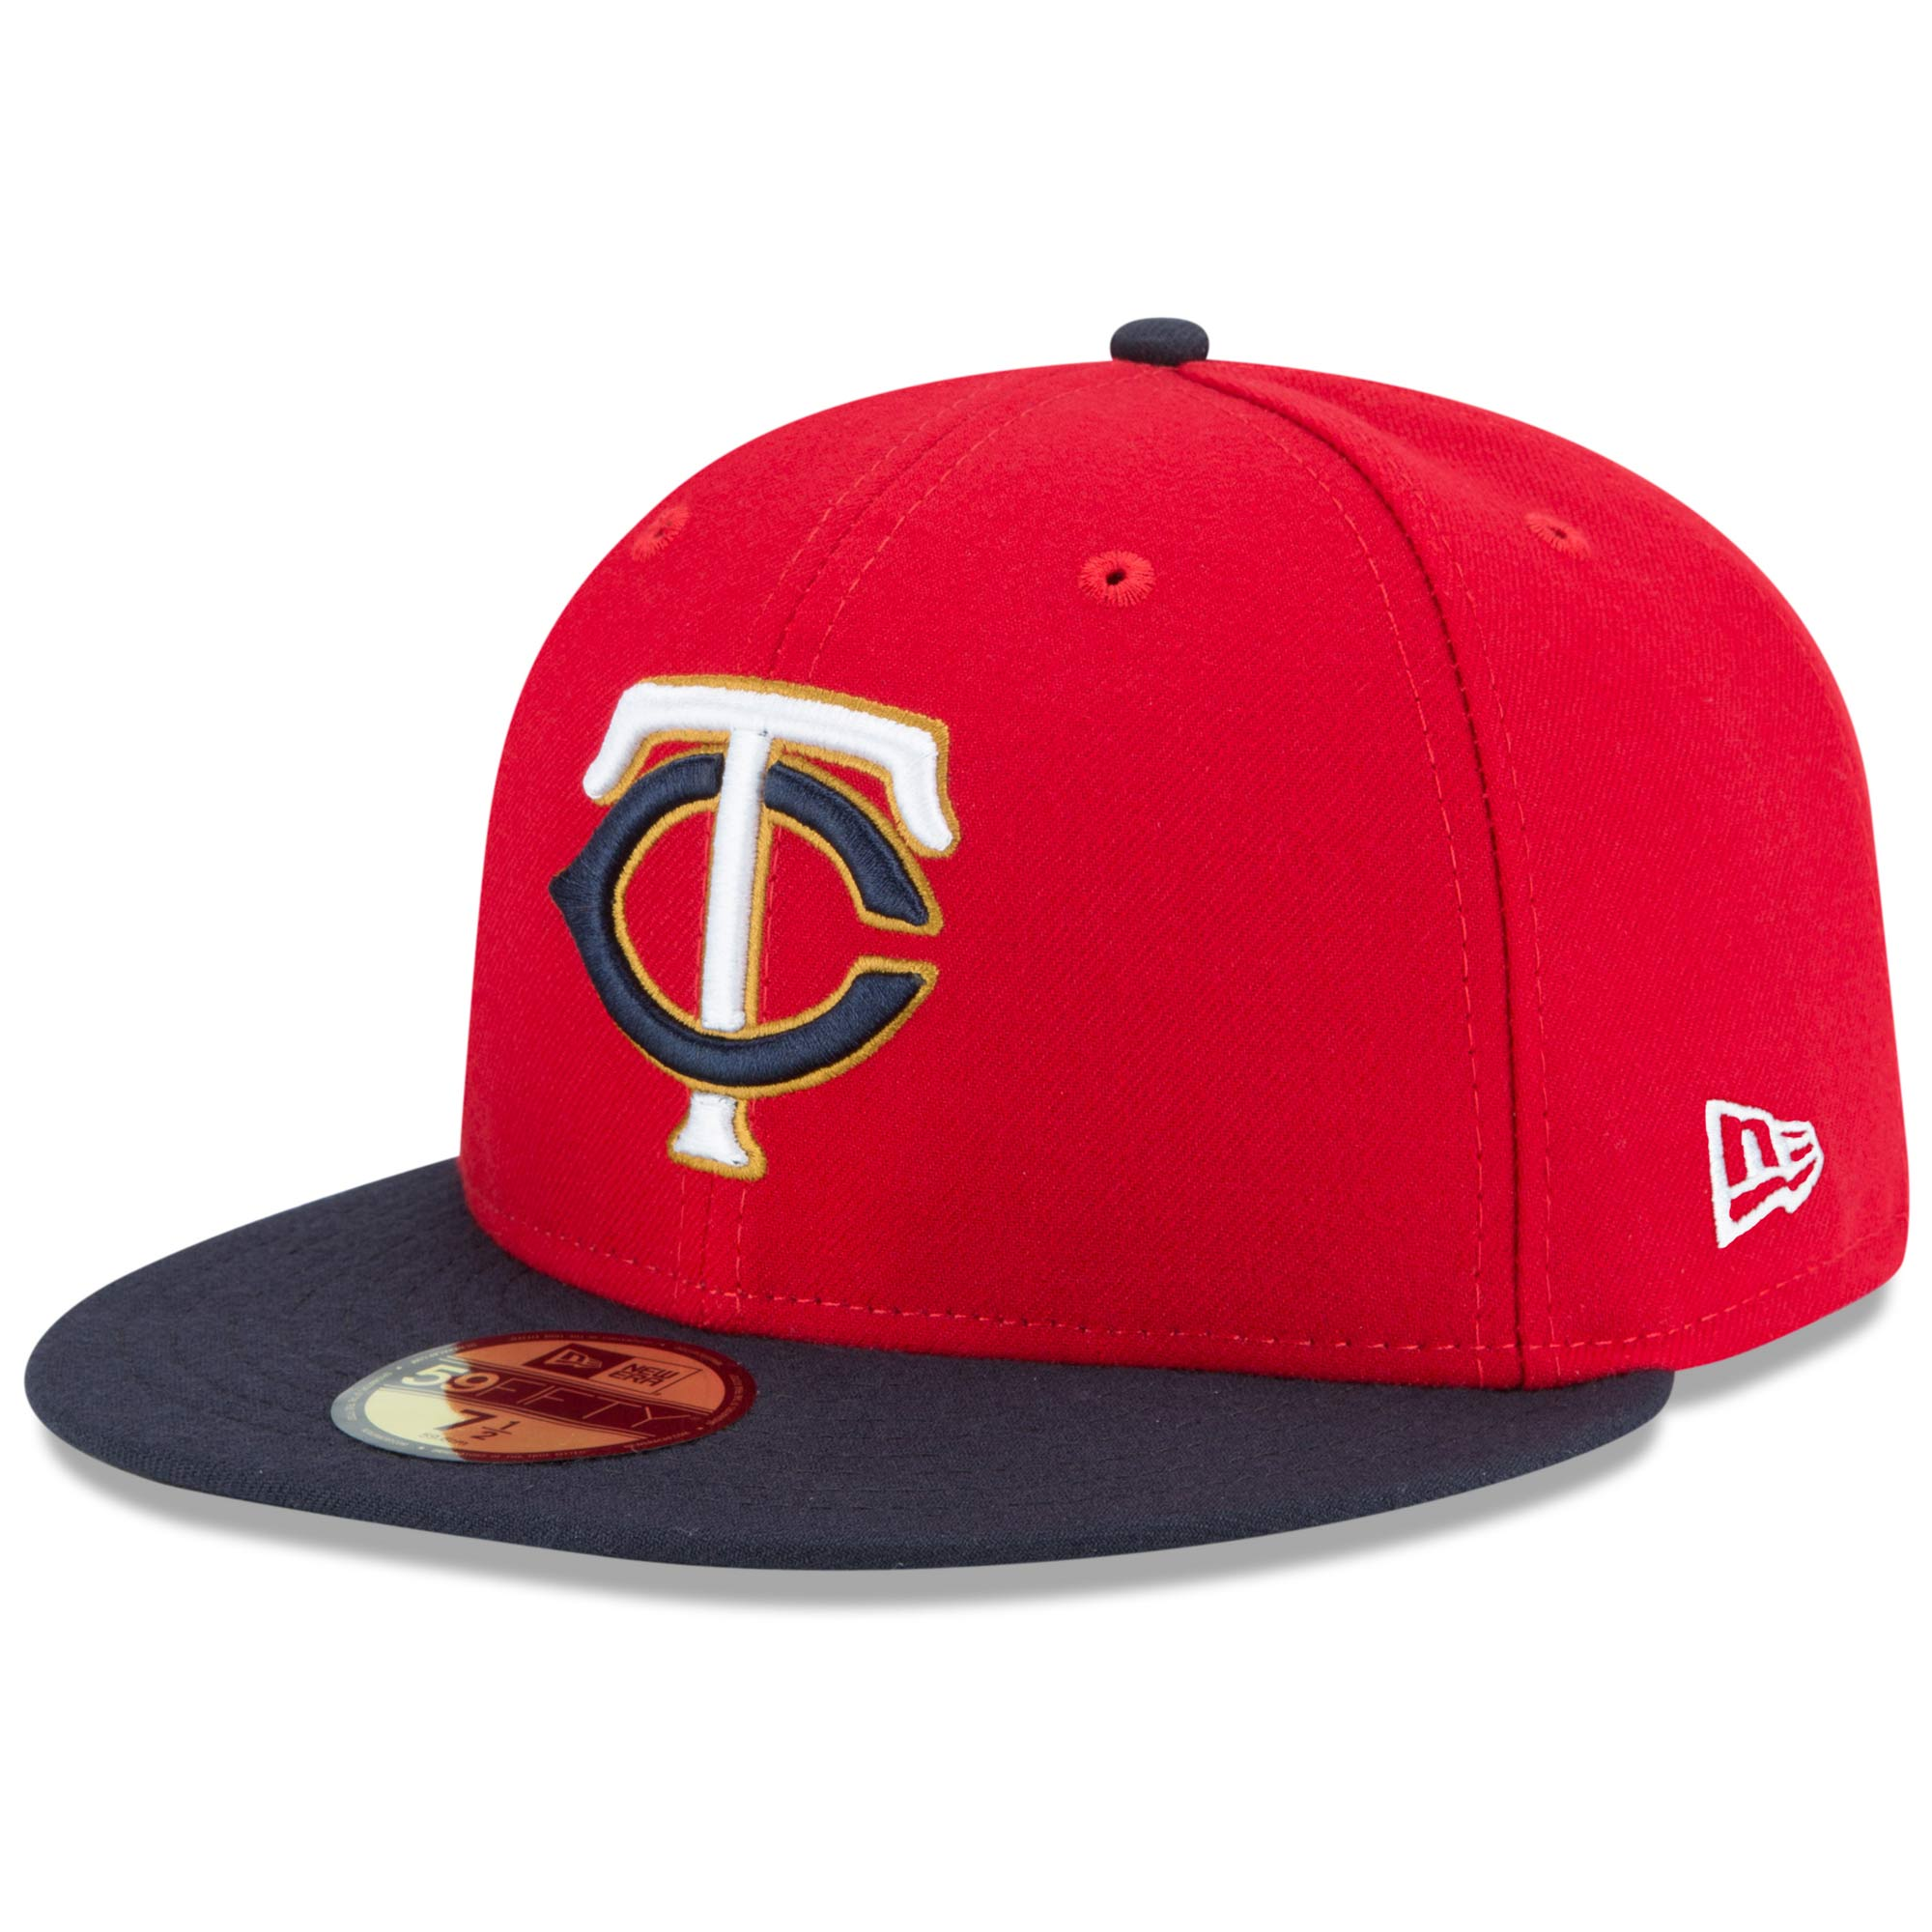 Minnesota Twins New Era Alternate 2 Authentic Collection On-Field 59FIFTY Fitted Hat - Red/Navy